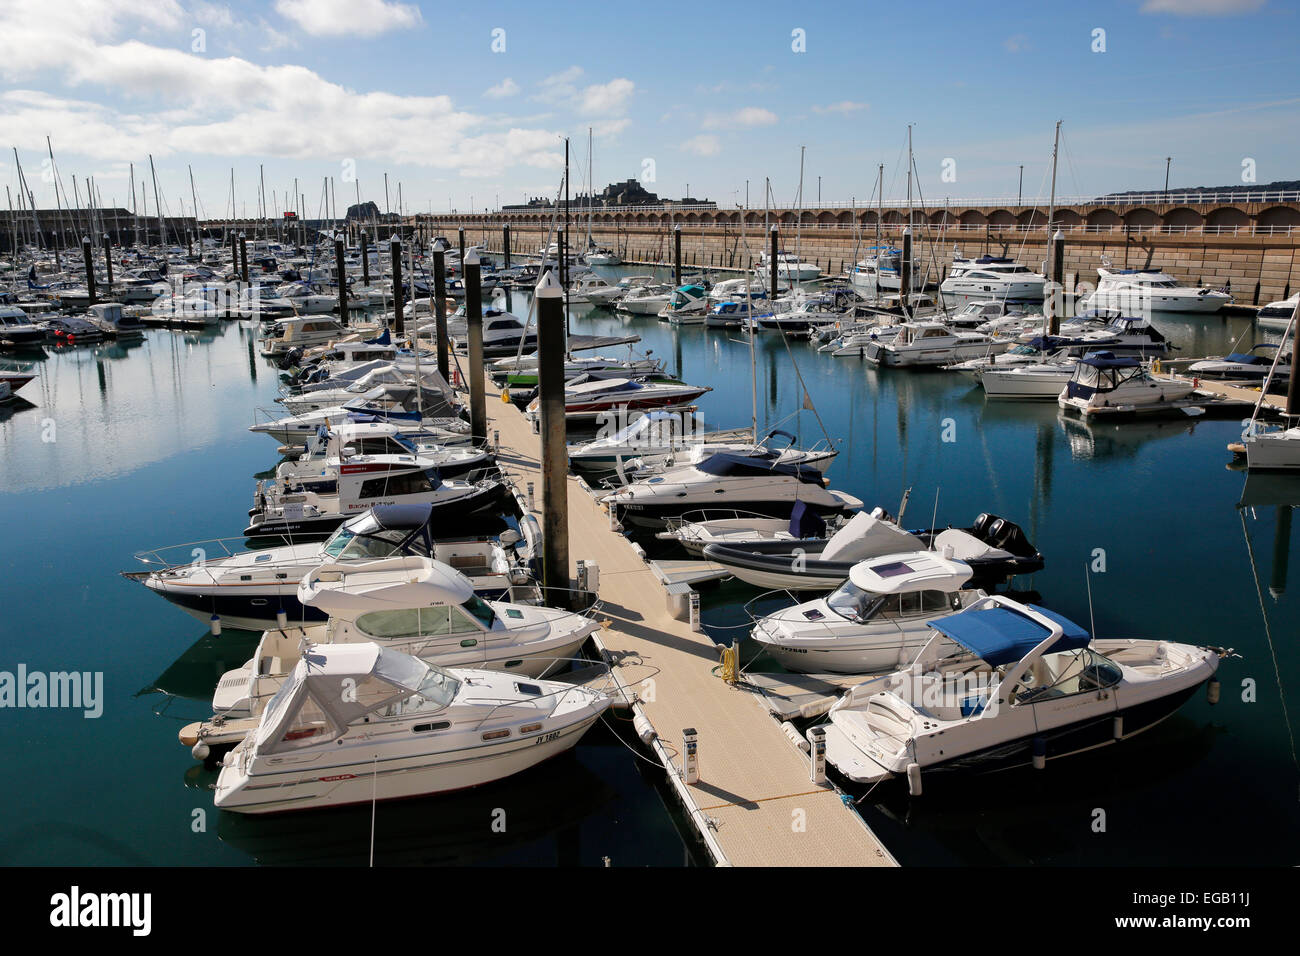 Yachts and motorboats are moored in the marina in St. Helier, Jersey UK - Stock Image